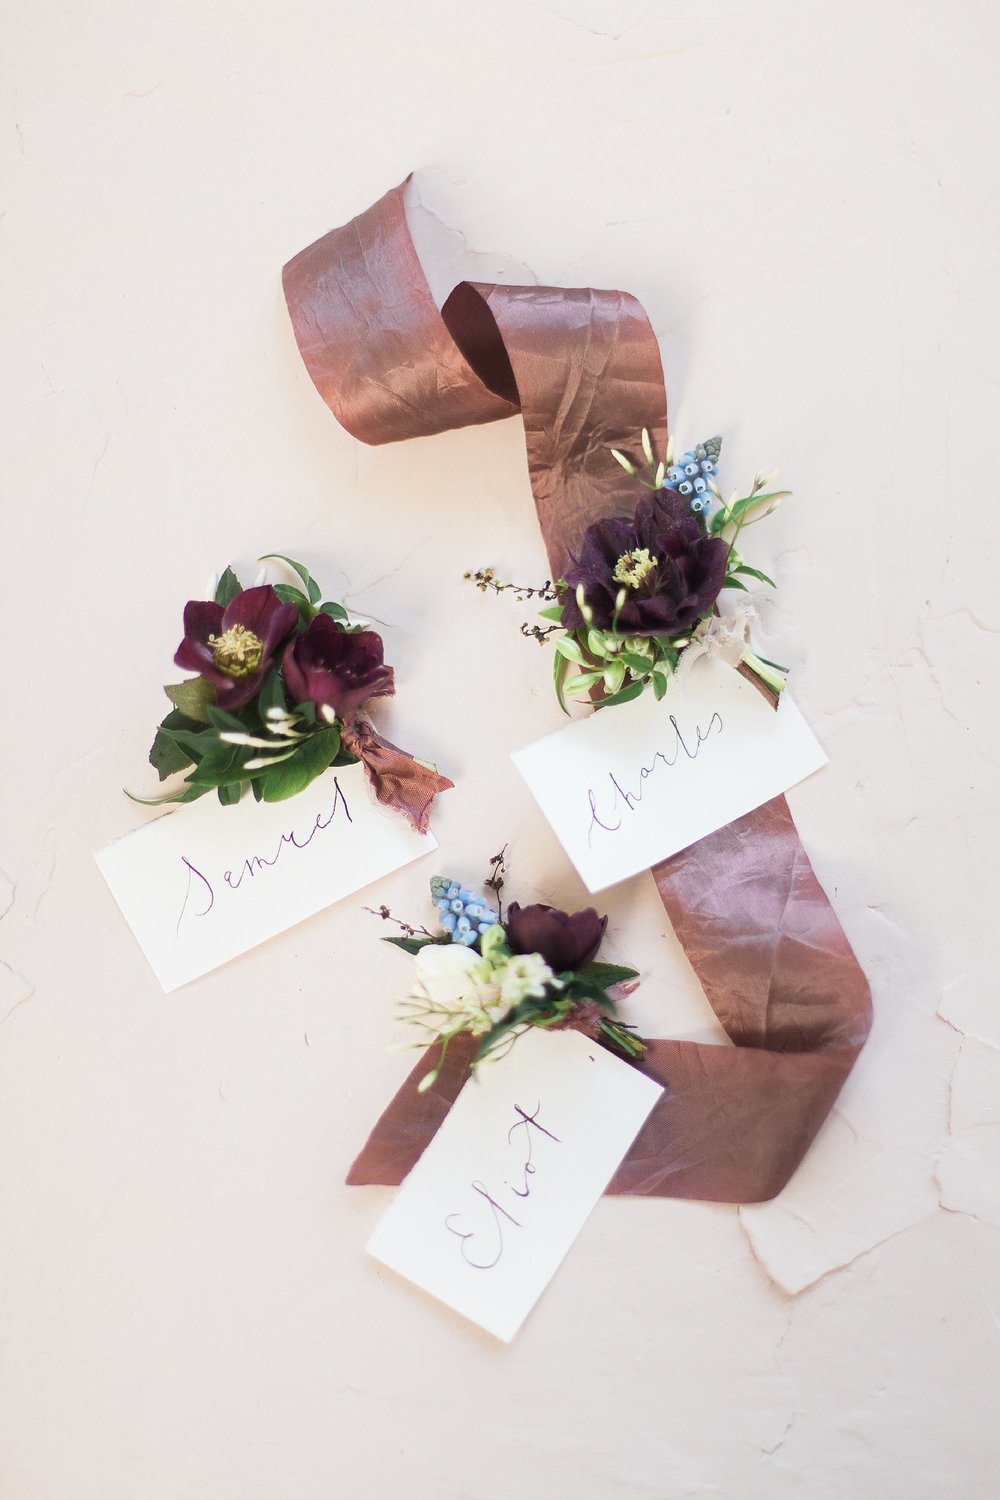 Winnipeg Wedding Photographer Keila Marie Photography | Wedding details calligraphy name tags